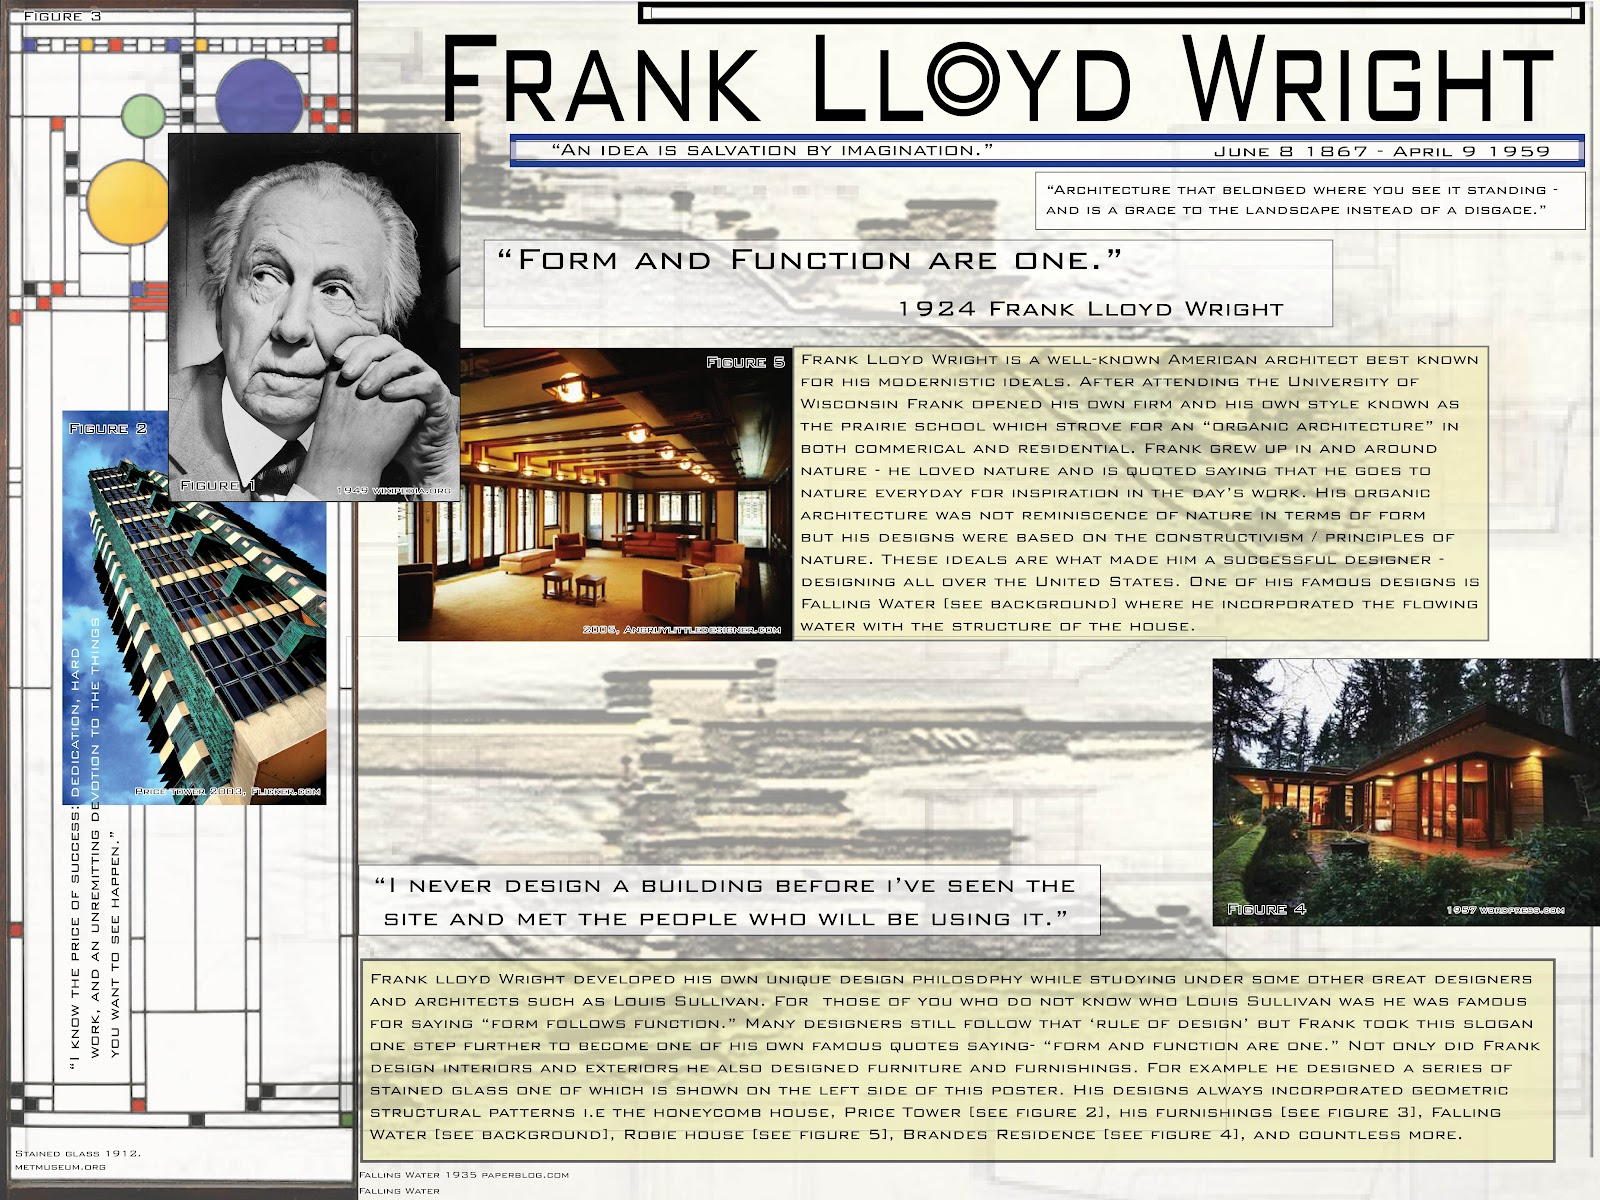 the life of frank lloyd wright and his career as an architect Discover the remarkable life and work of pedro e guerrero, a mexican american   when frank lloyd wright hired pedro e guerrero to photograph taliesin west  in  from the neighborhood and hoped the architect would offer his son a job.